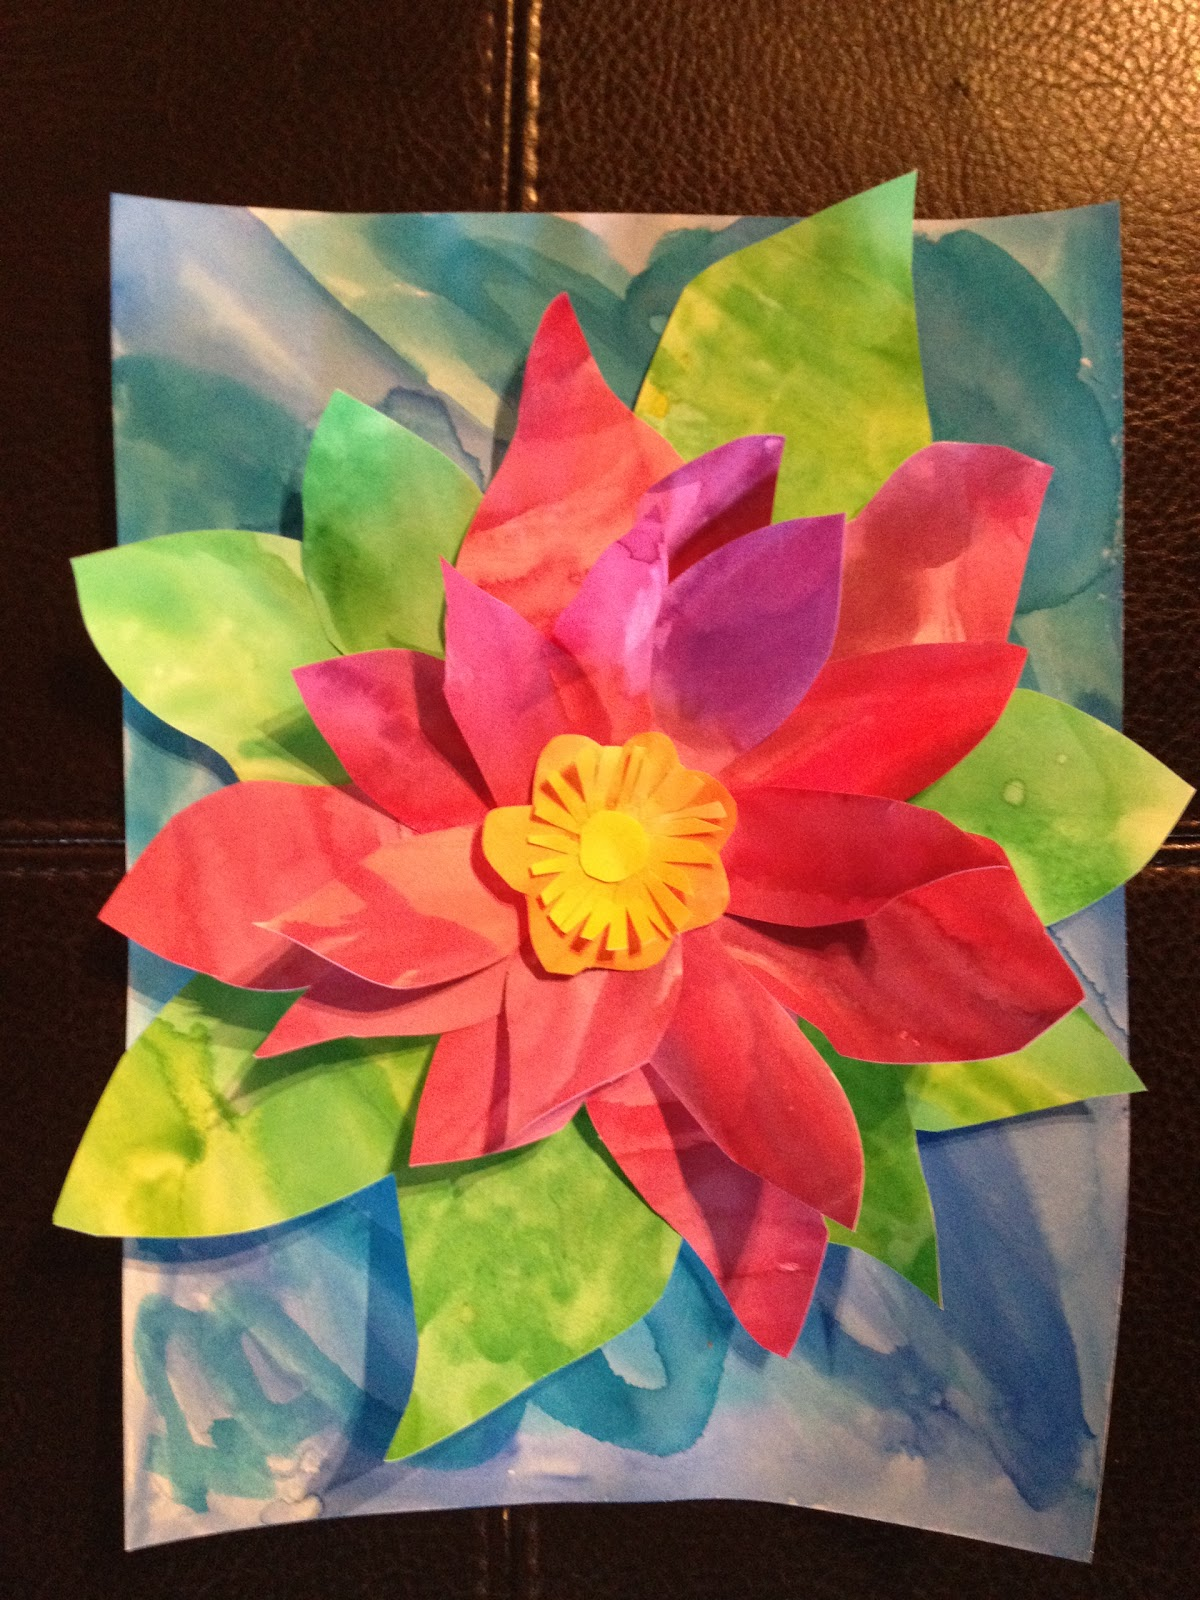 working 4 the classroom an art project because spring